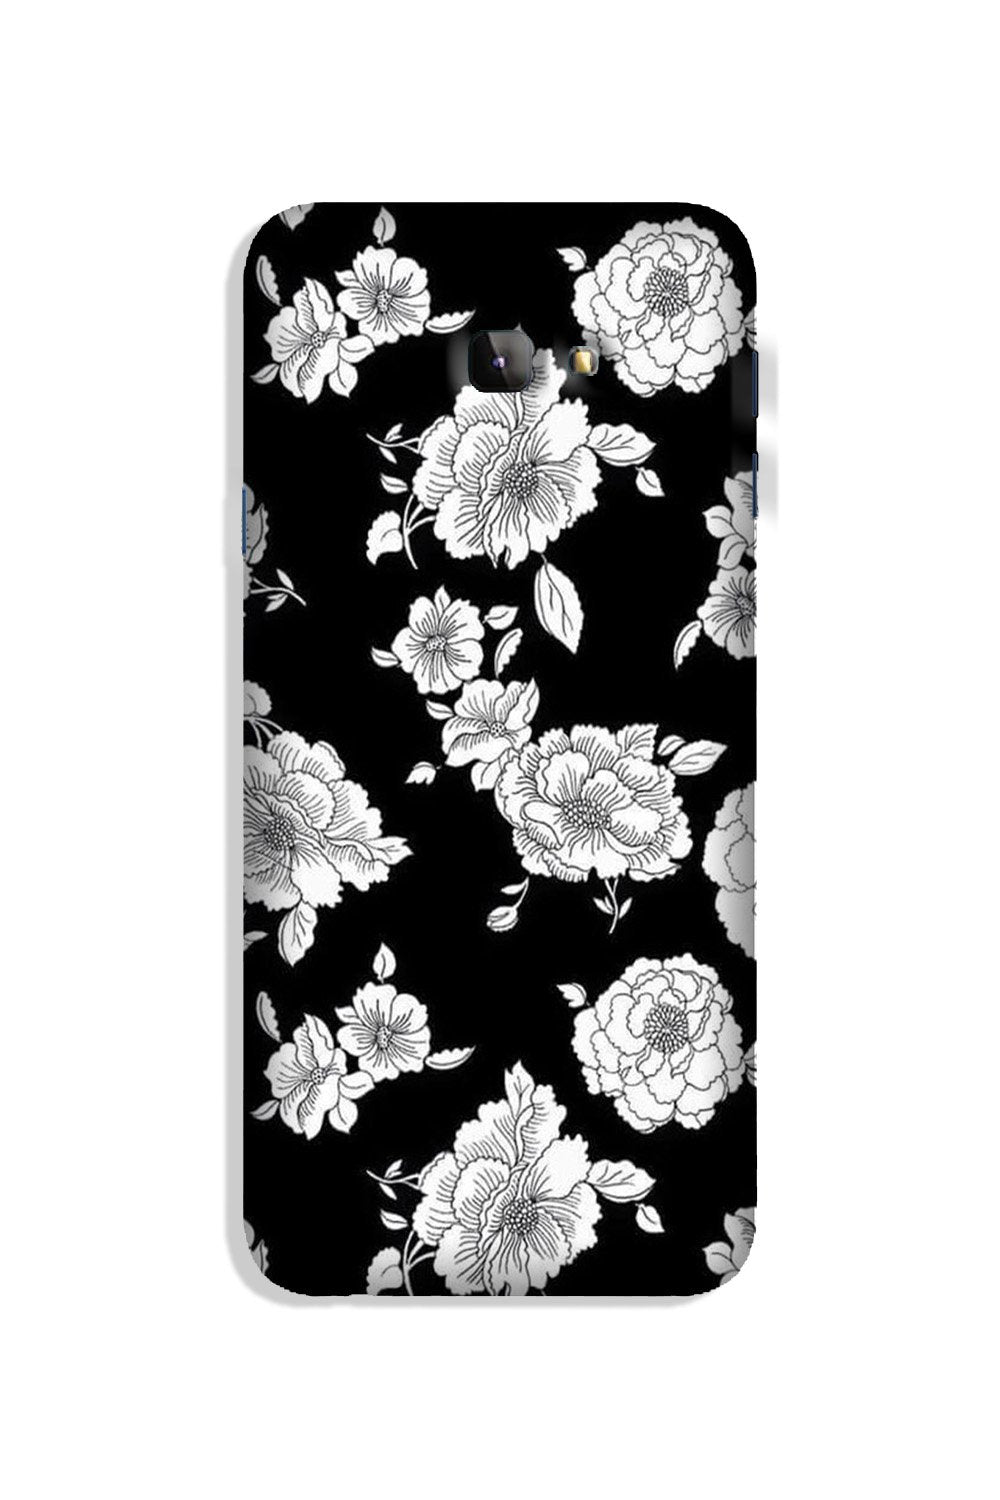 White flowers Black Background Case for Galaxy J4 Plus